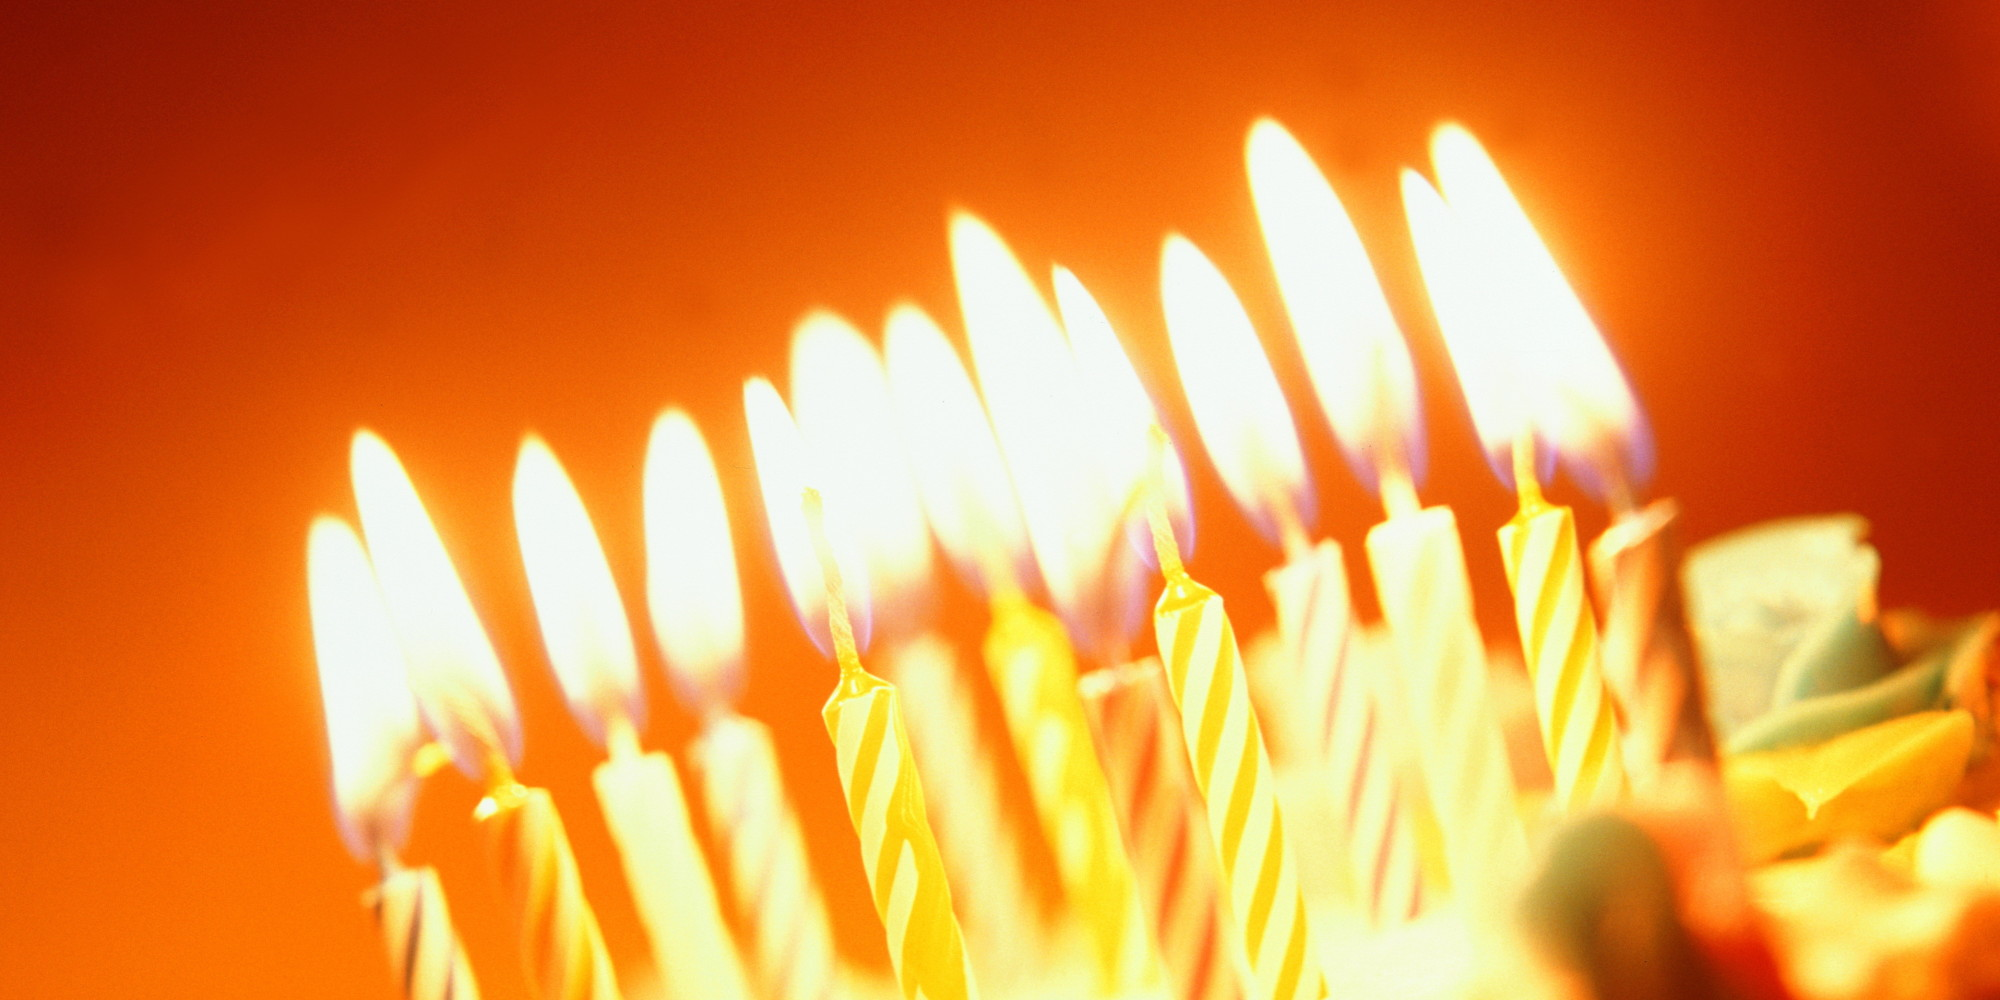 Image Birthday Cake With Lots Of Candles : What I ve Learned About Living Life To The Fullest As I ...